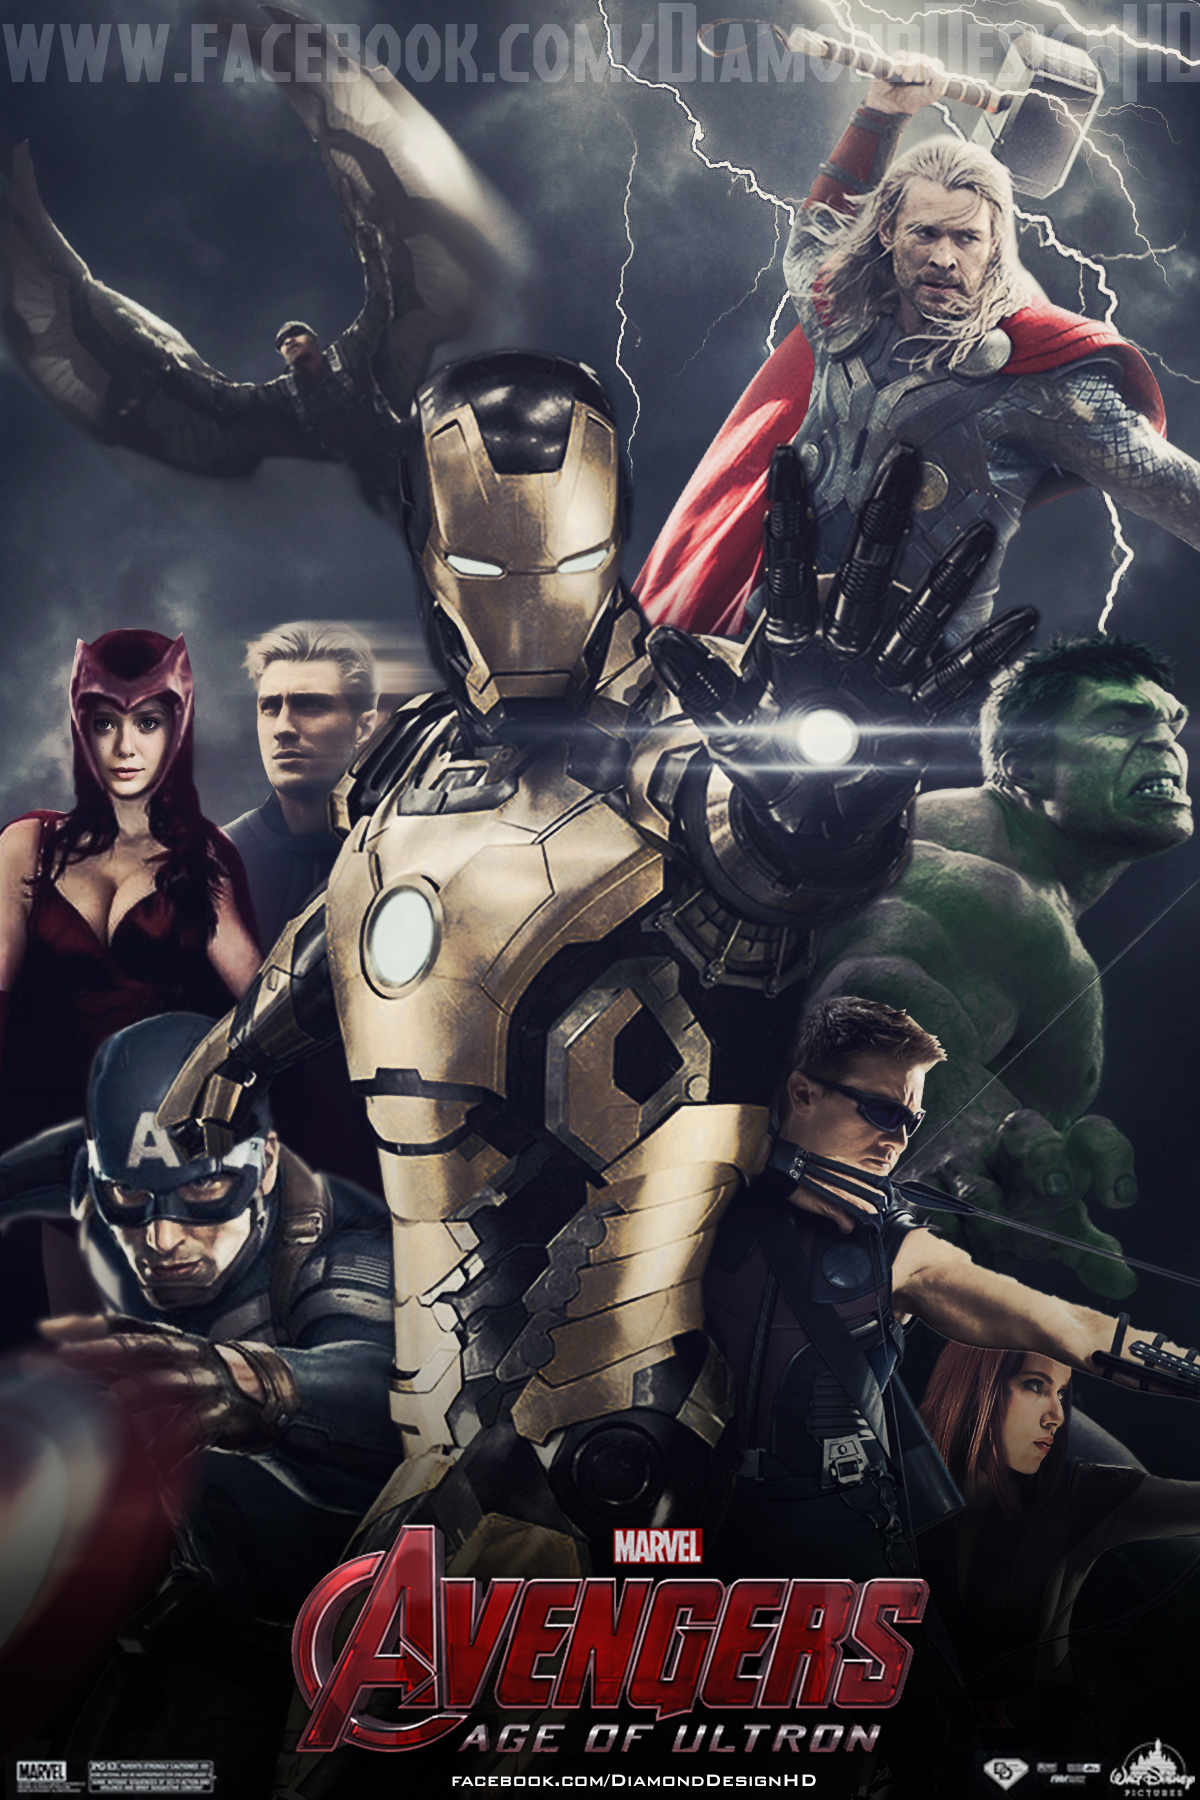 Avengers: Age of Ultron (FAN MADE) Poster - The Avengers ...